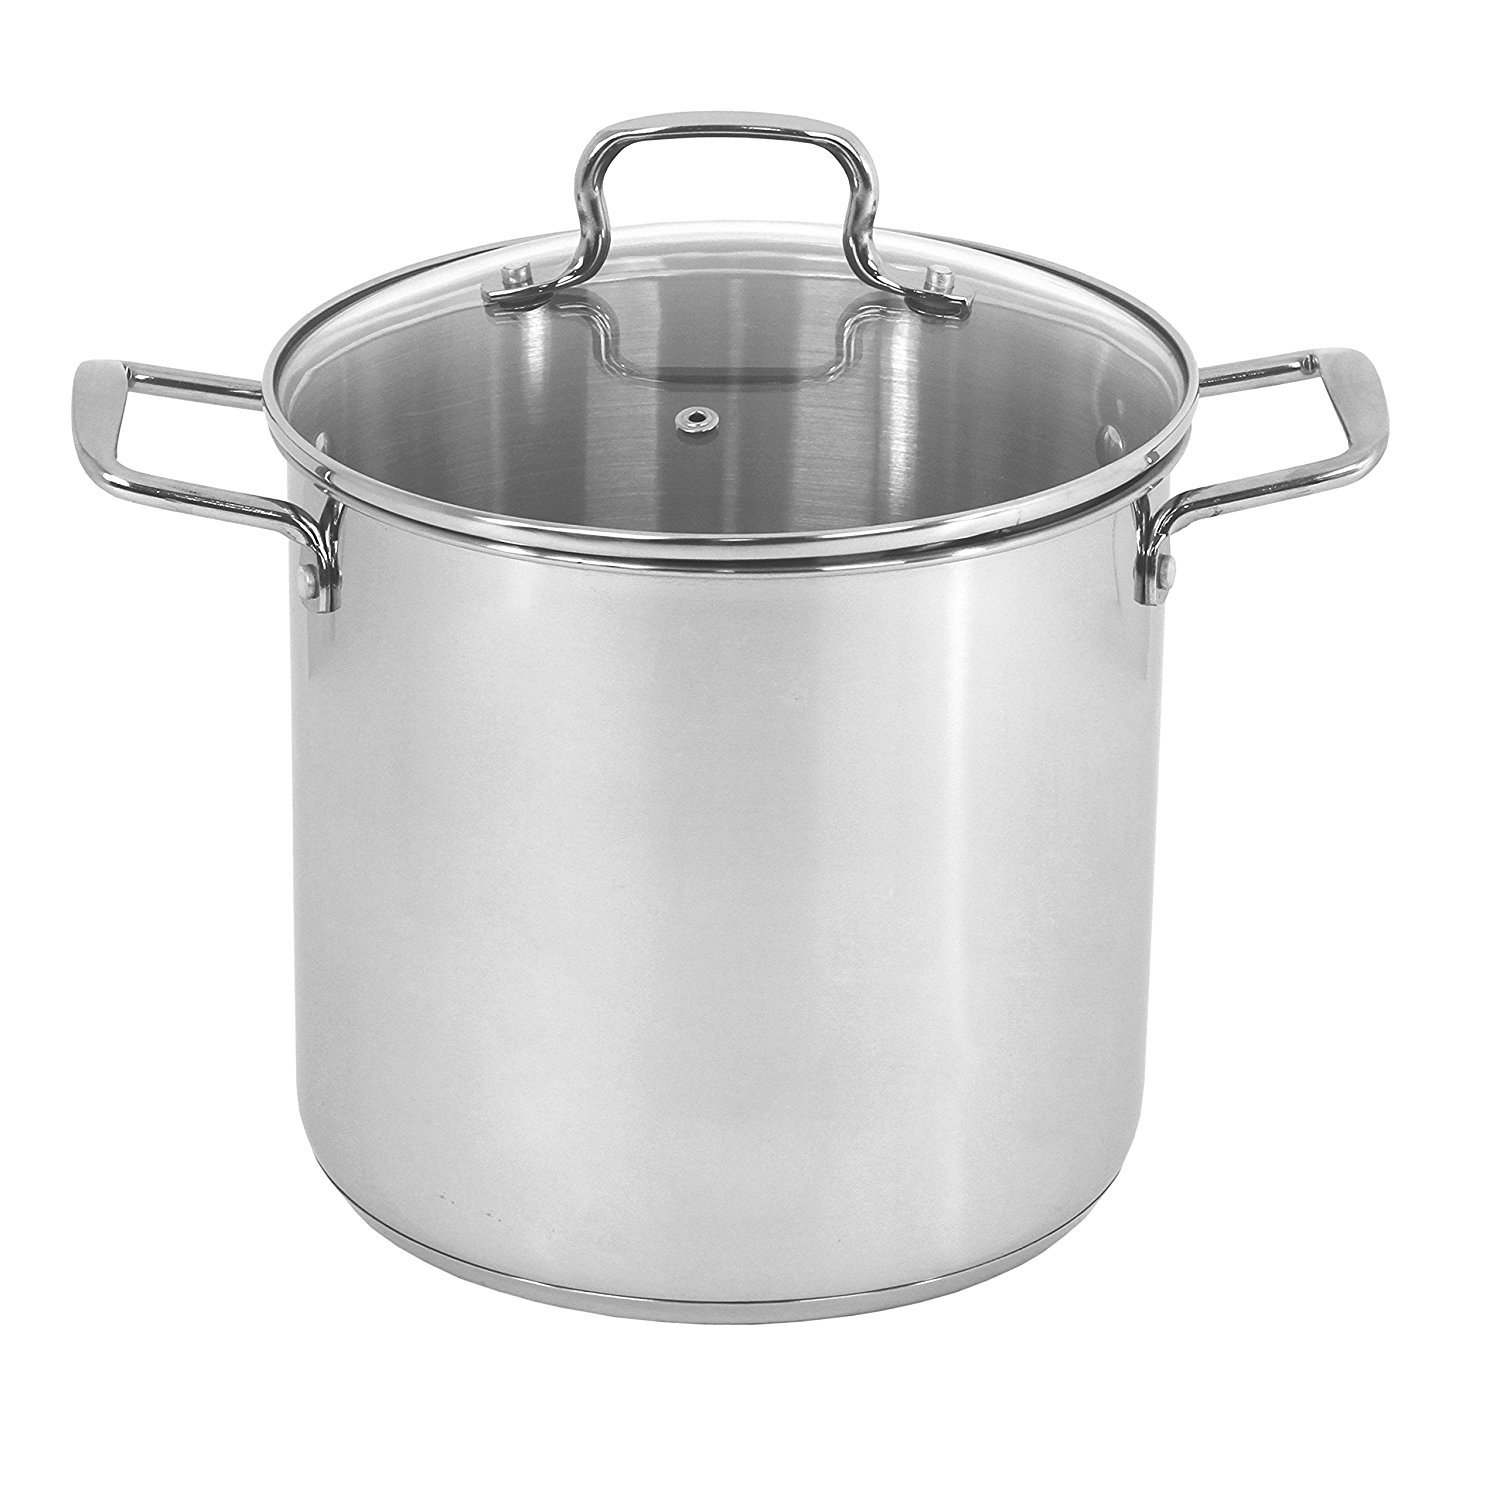 Oneida Heavy Duty Stainless Steel Induction Stock Pot, 8 Quart 35489